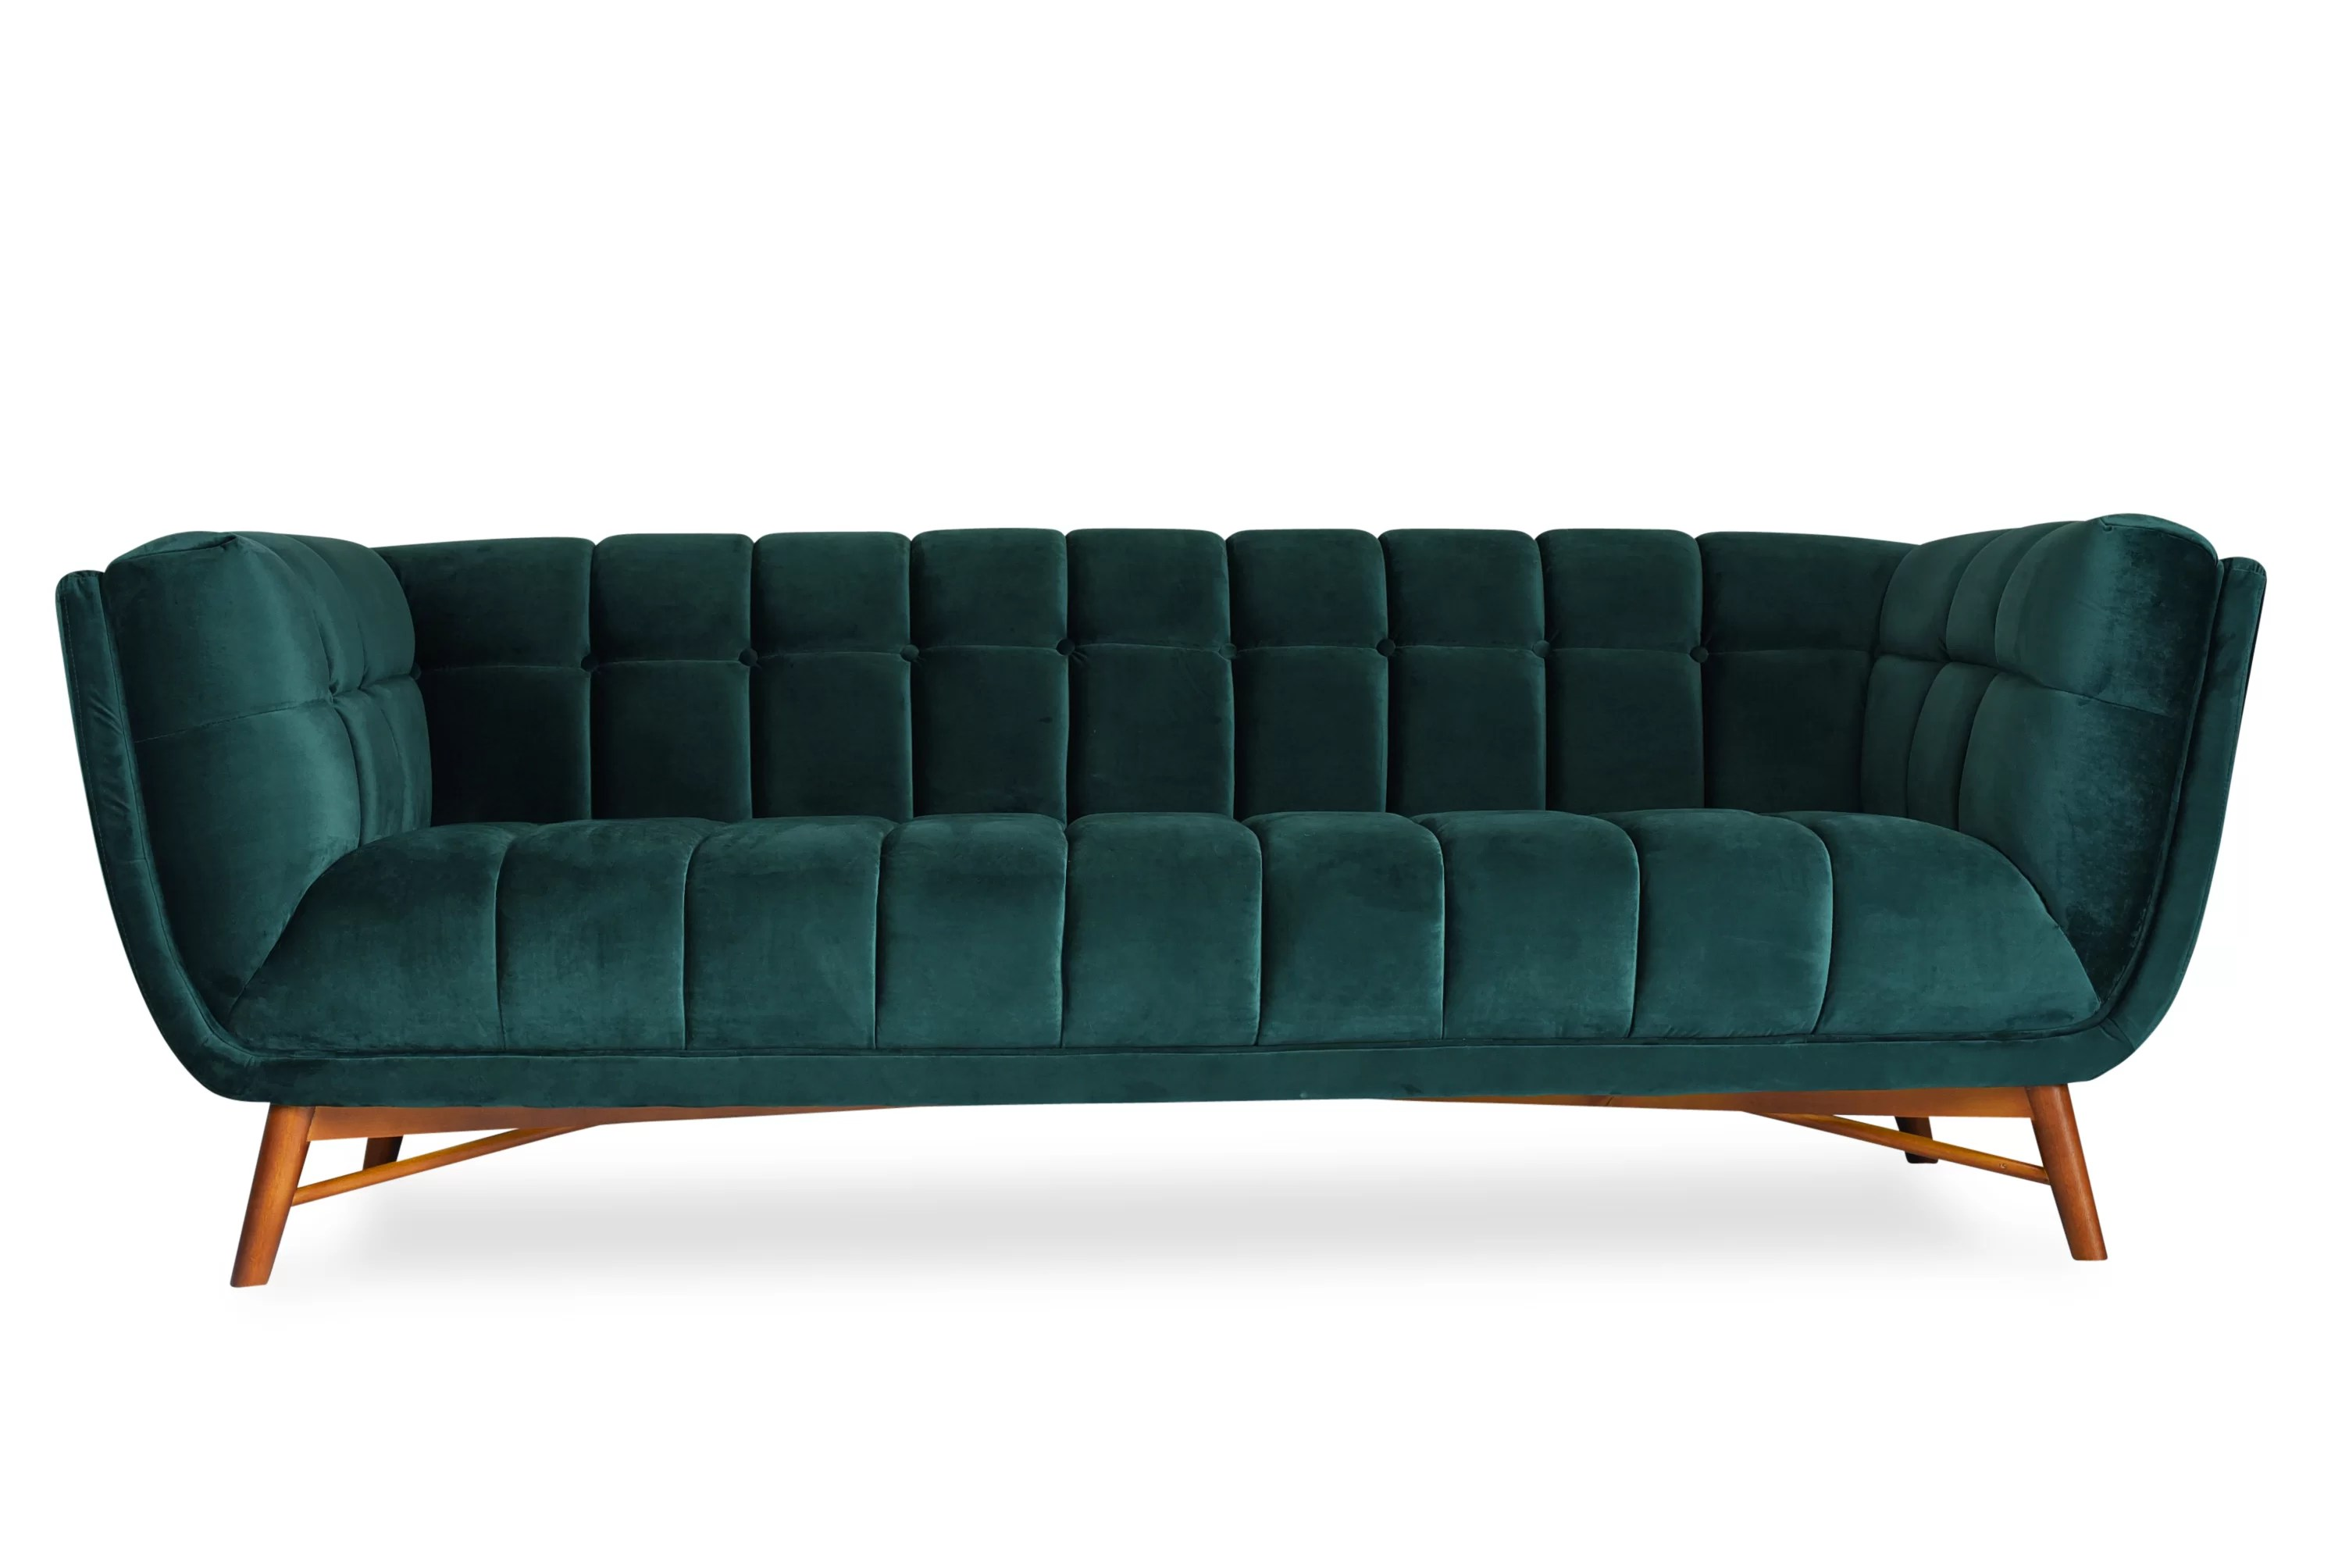 Chesterfield Sofa Online Uk Clarisse Mid Century Modern Chesterfield Sofa